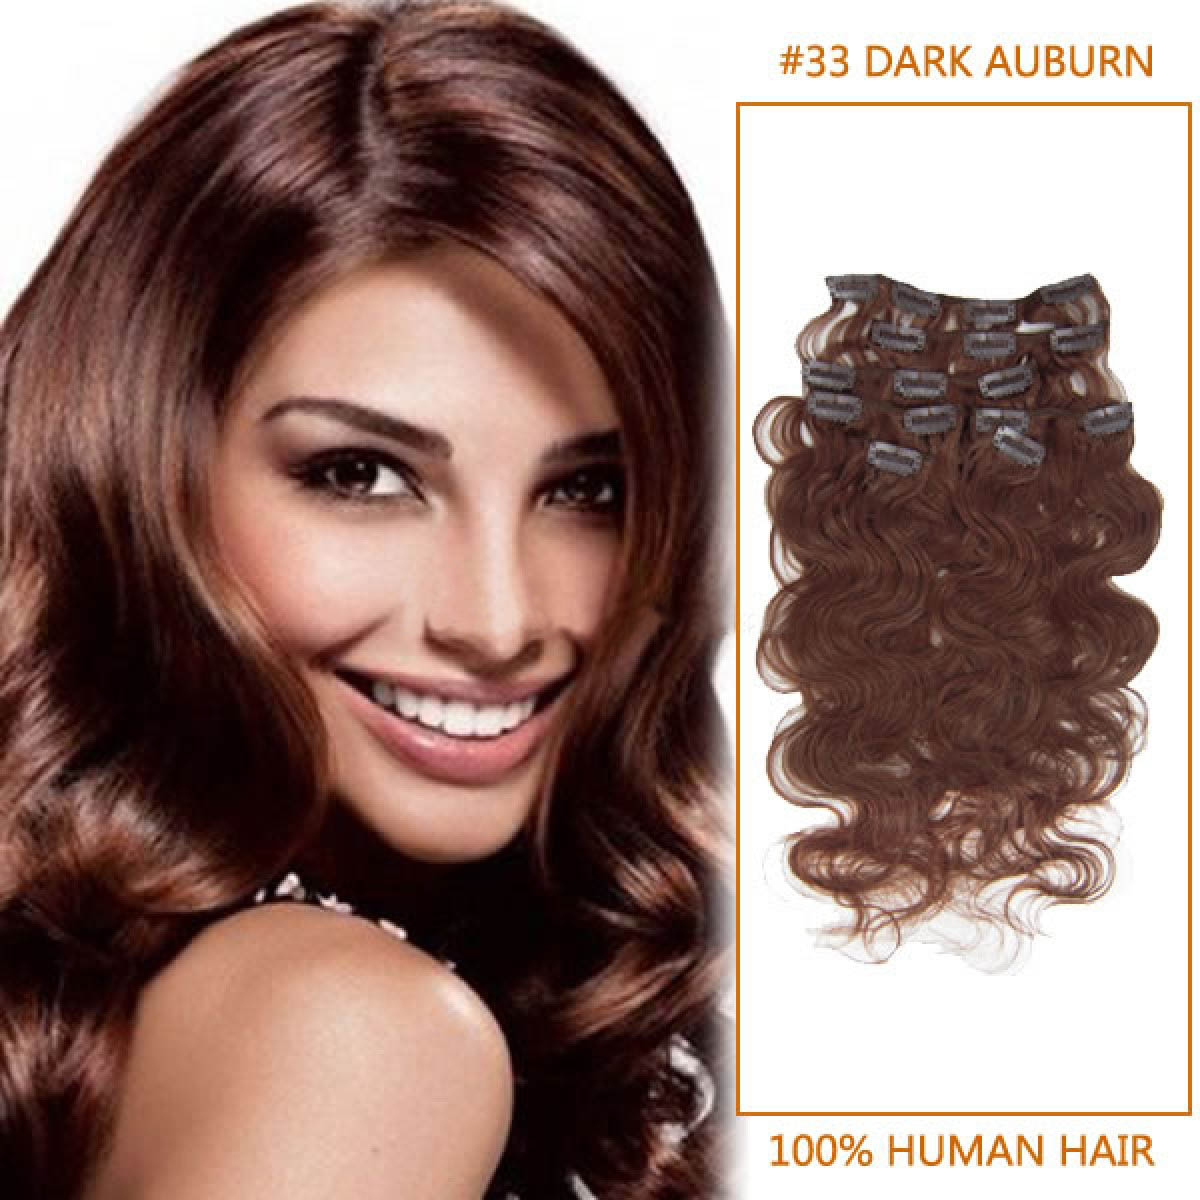 Inch 33 dark auburn wavy clip in human hair extensions 10pcs 20 inch 33 dark auburn wavy clip in human hair extensions 10pcs pmusecretfo Image collections